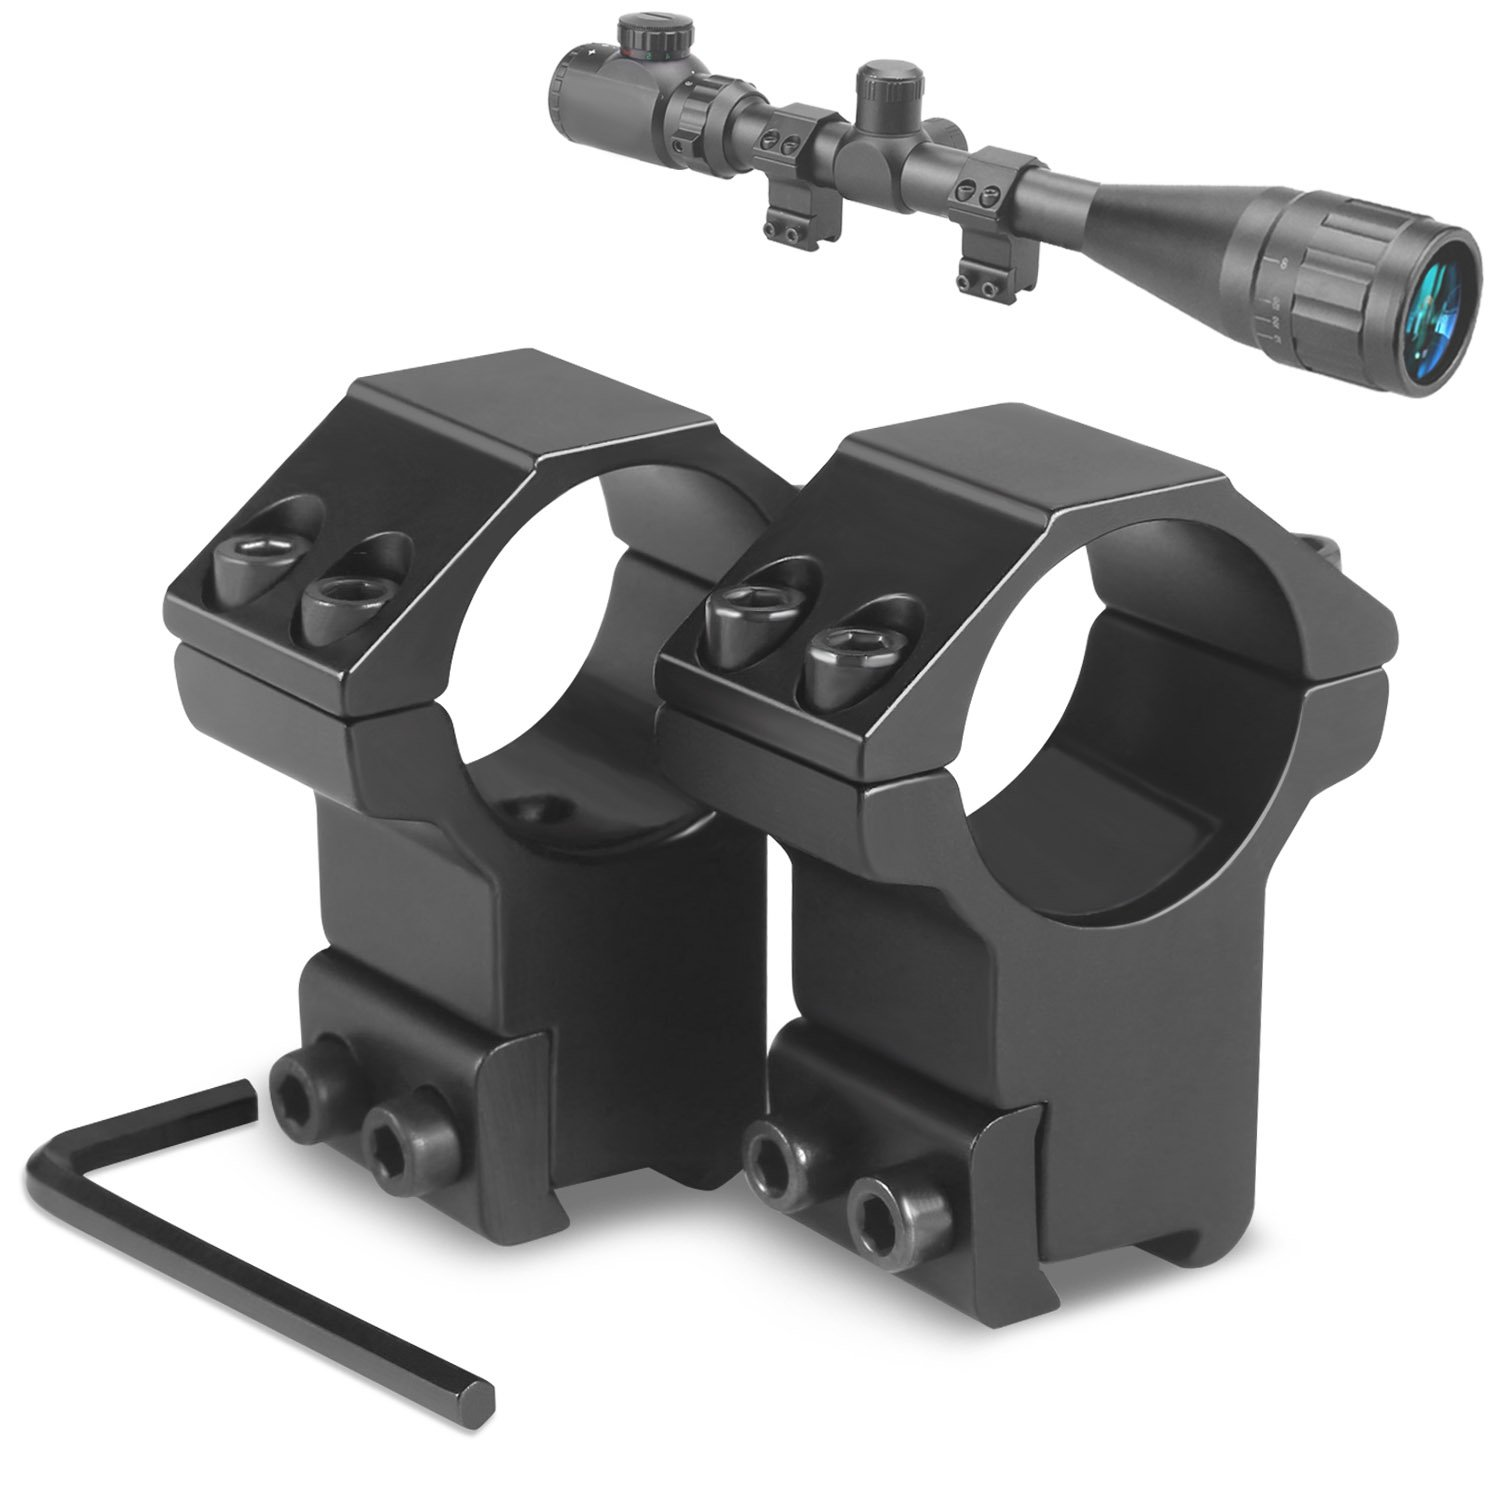 Modkin 1'' Dovetail Scope Rings, High Profile Scope Mount for 11mm Dovetail Rails -2 Pieces (One has Stop pin)